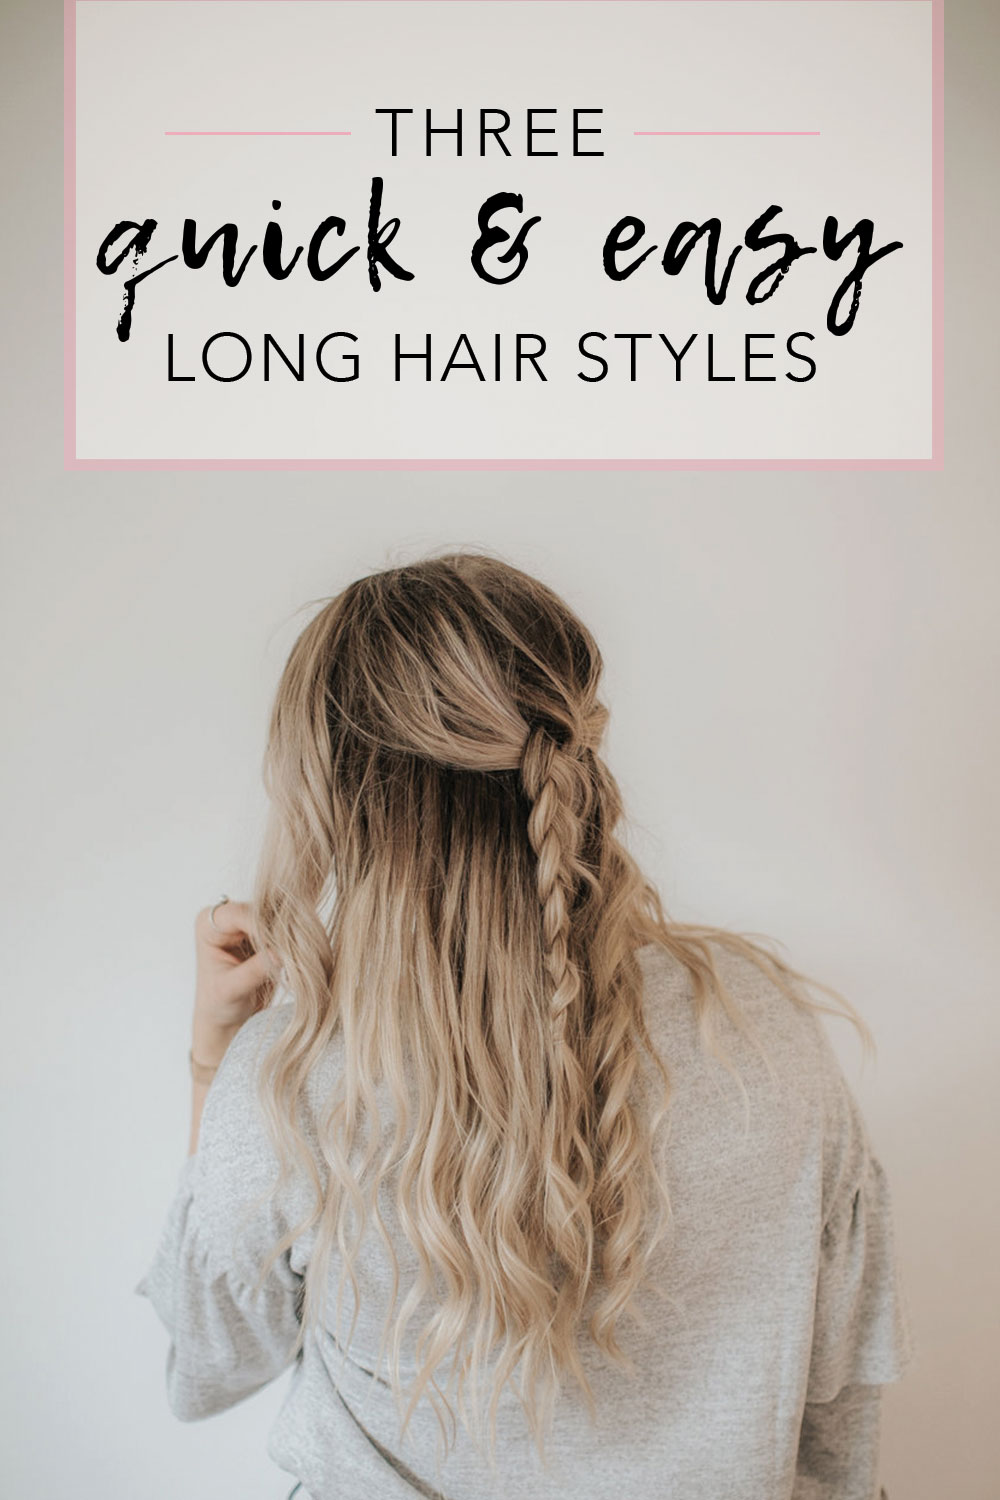 Three quick and easy long hair style ideas